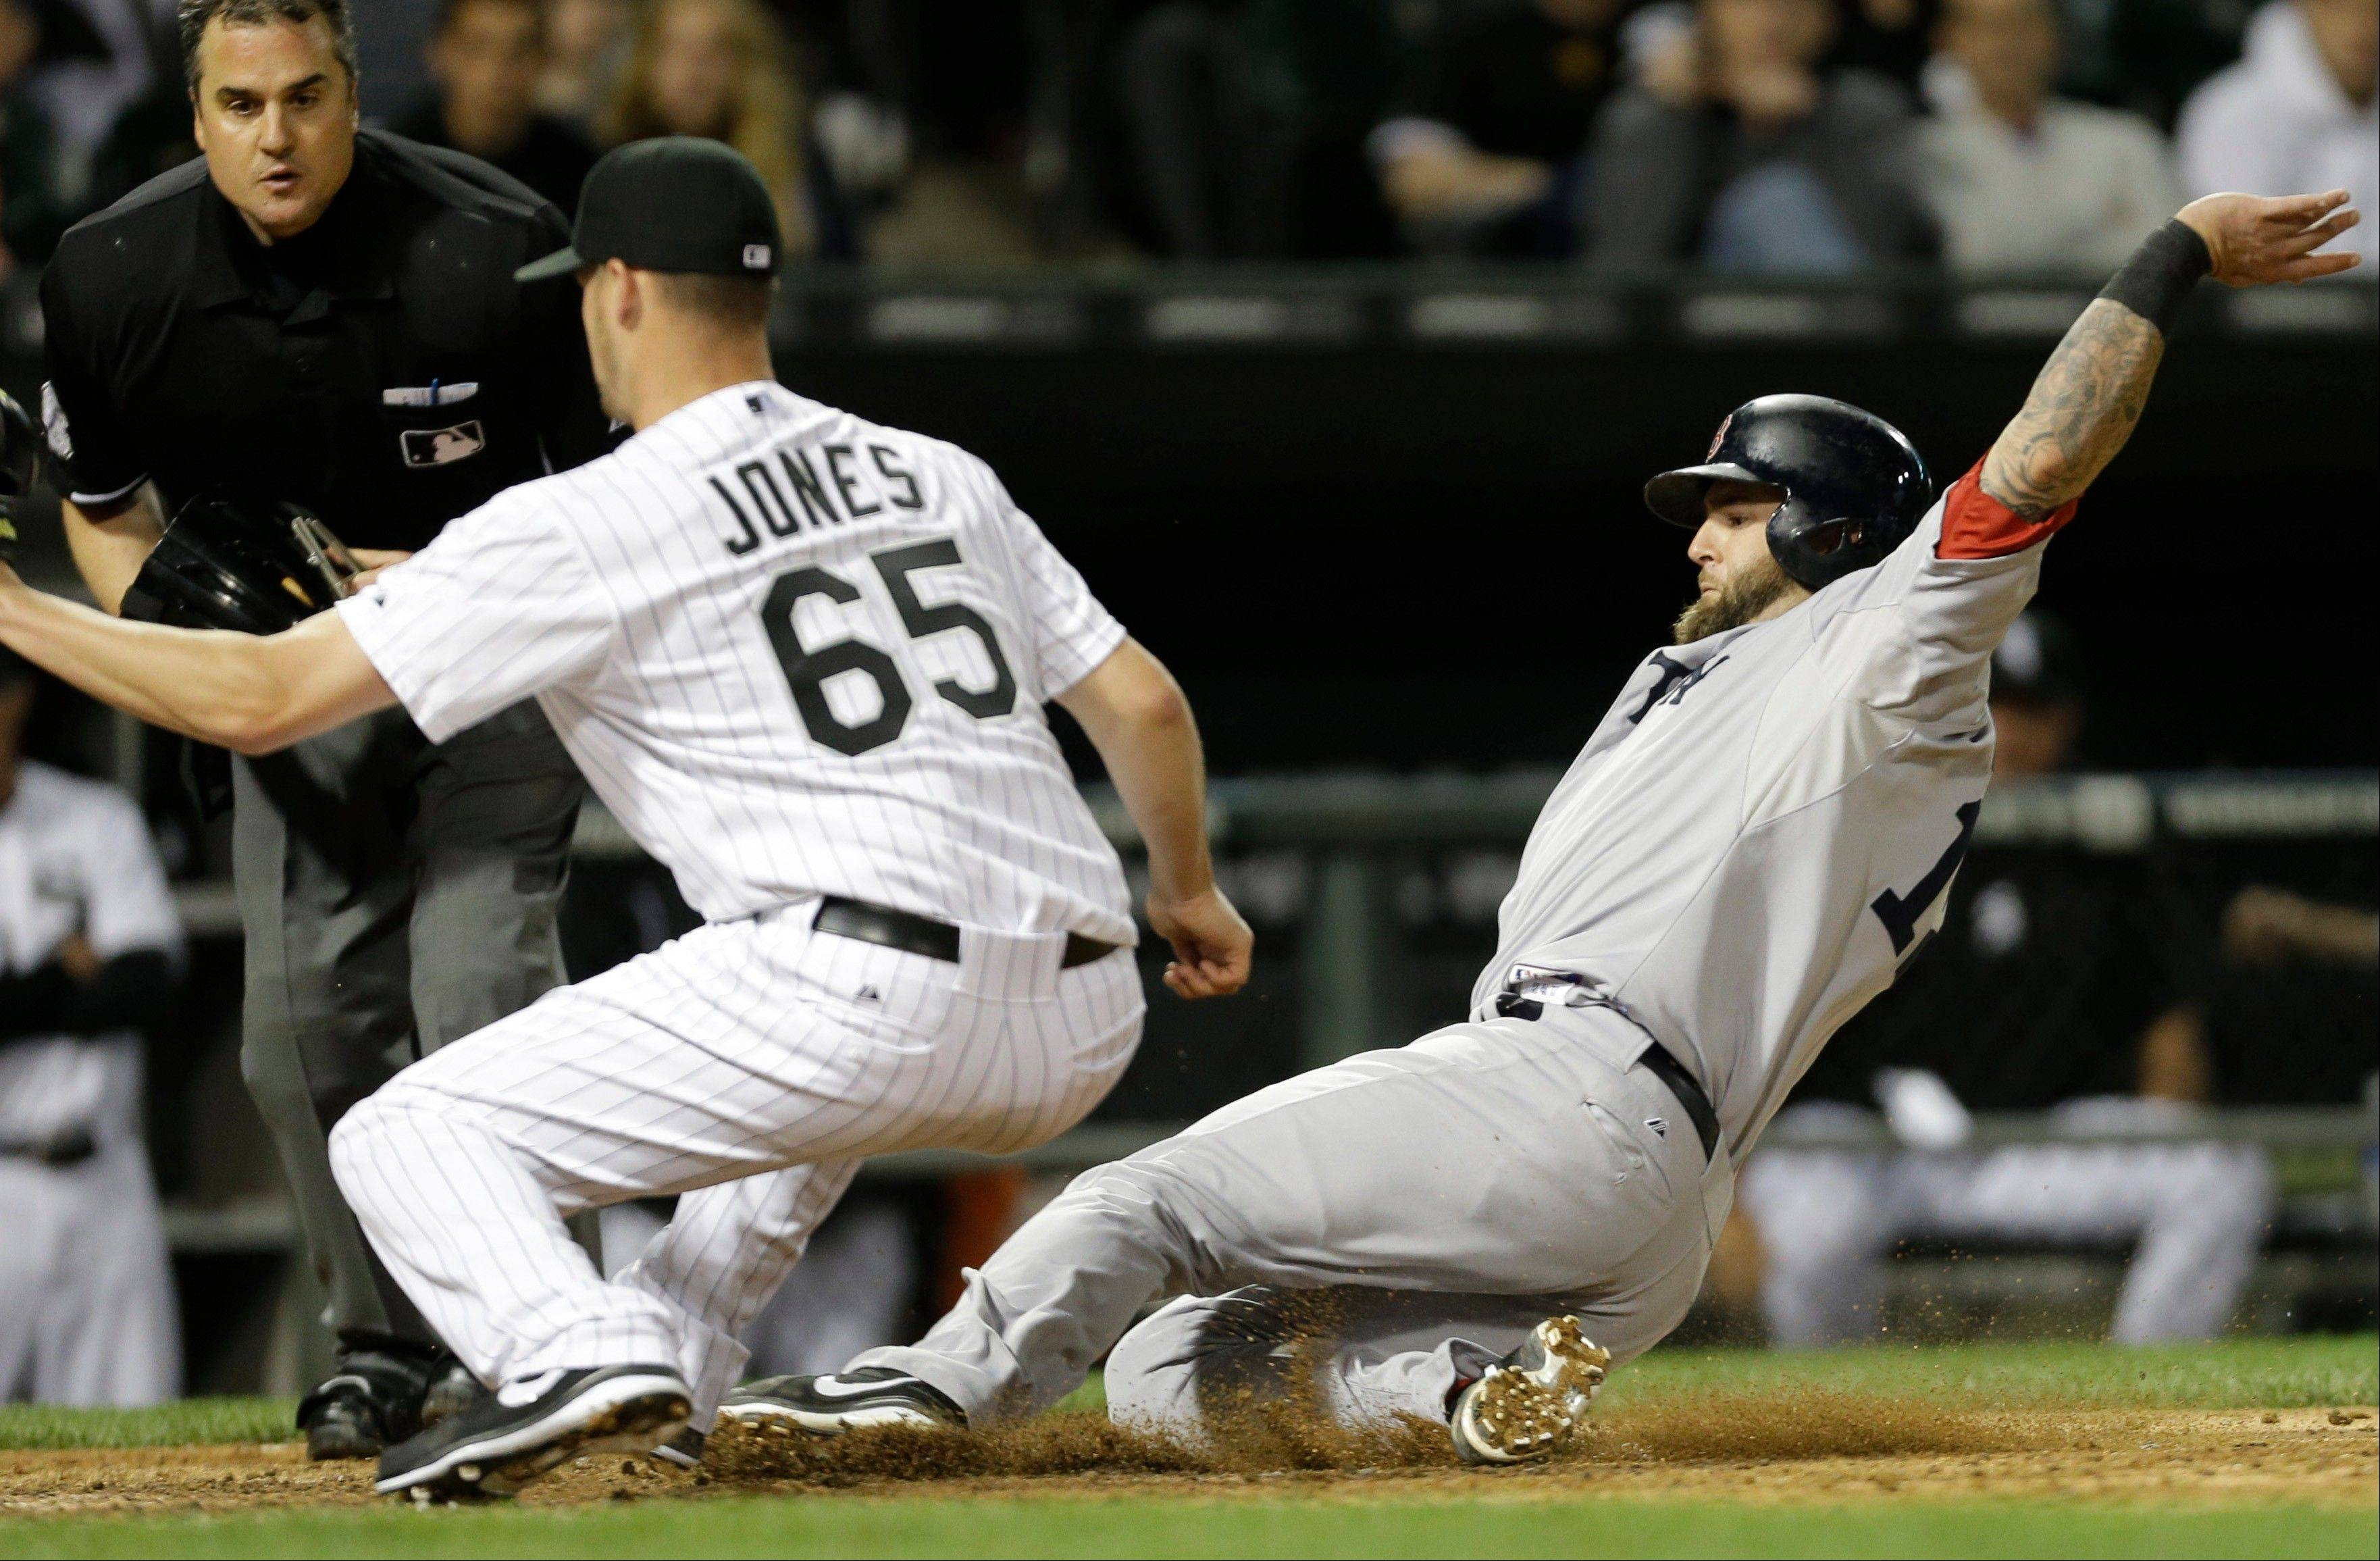 Boston Red Sox's Mike Napoli, right, scores after a passed ball as Chicago White Sox relief pitcher Nate Jones (65) waits for the ball Wednesday night at U.S. Cellular Field. The White Sox lost 6-2.